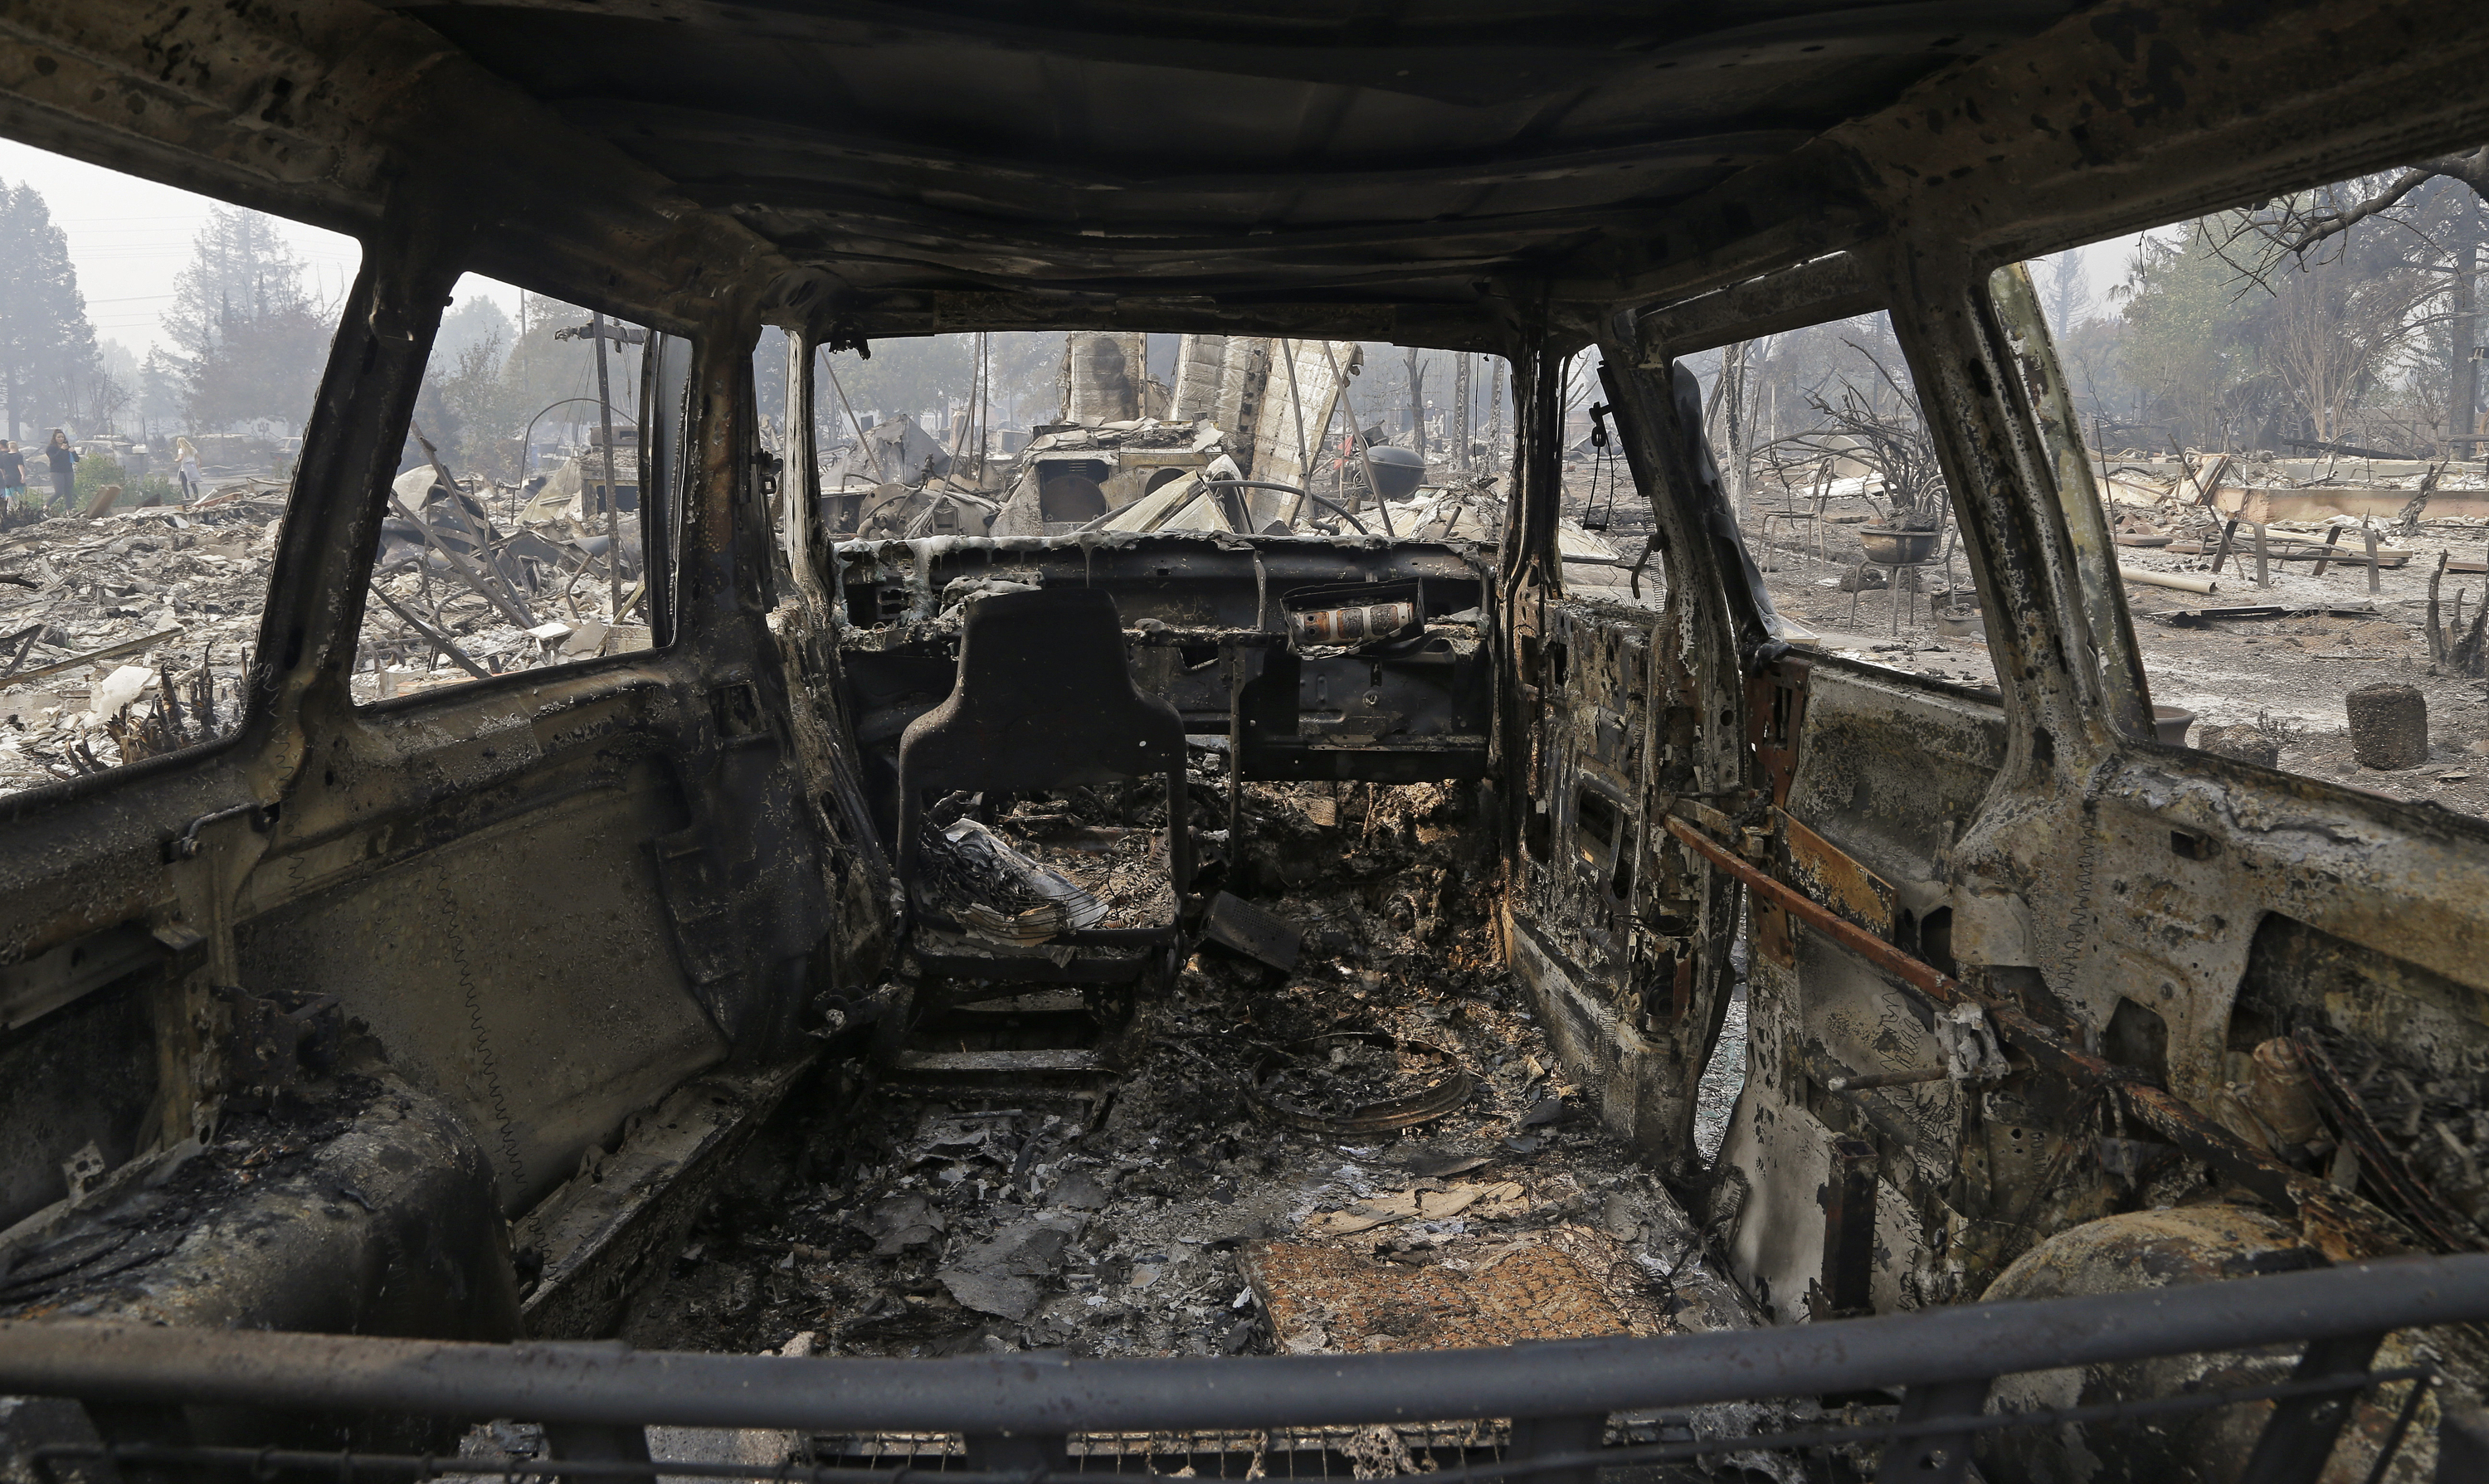 FILE - In this Oct. 10, 2017, file photo, a view from inside a parked car destroyed by fire in the Coffey Park area of Santa Rosa, Calif. An onslaught of wildfires across a wide swath of Northern California broke out almost simultaneously then grew exponentially, swallowing up properties from wineries to trailer parks and tearing through both tiny rural towns and urban subdivisions. (AP Photo/Ben Margot, File)